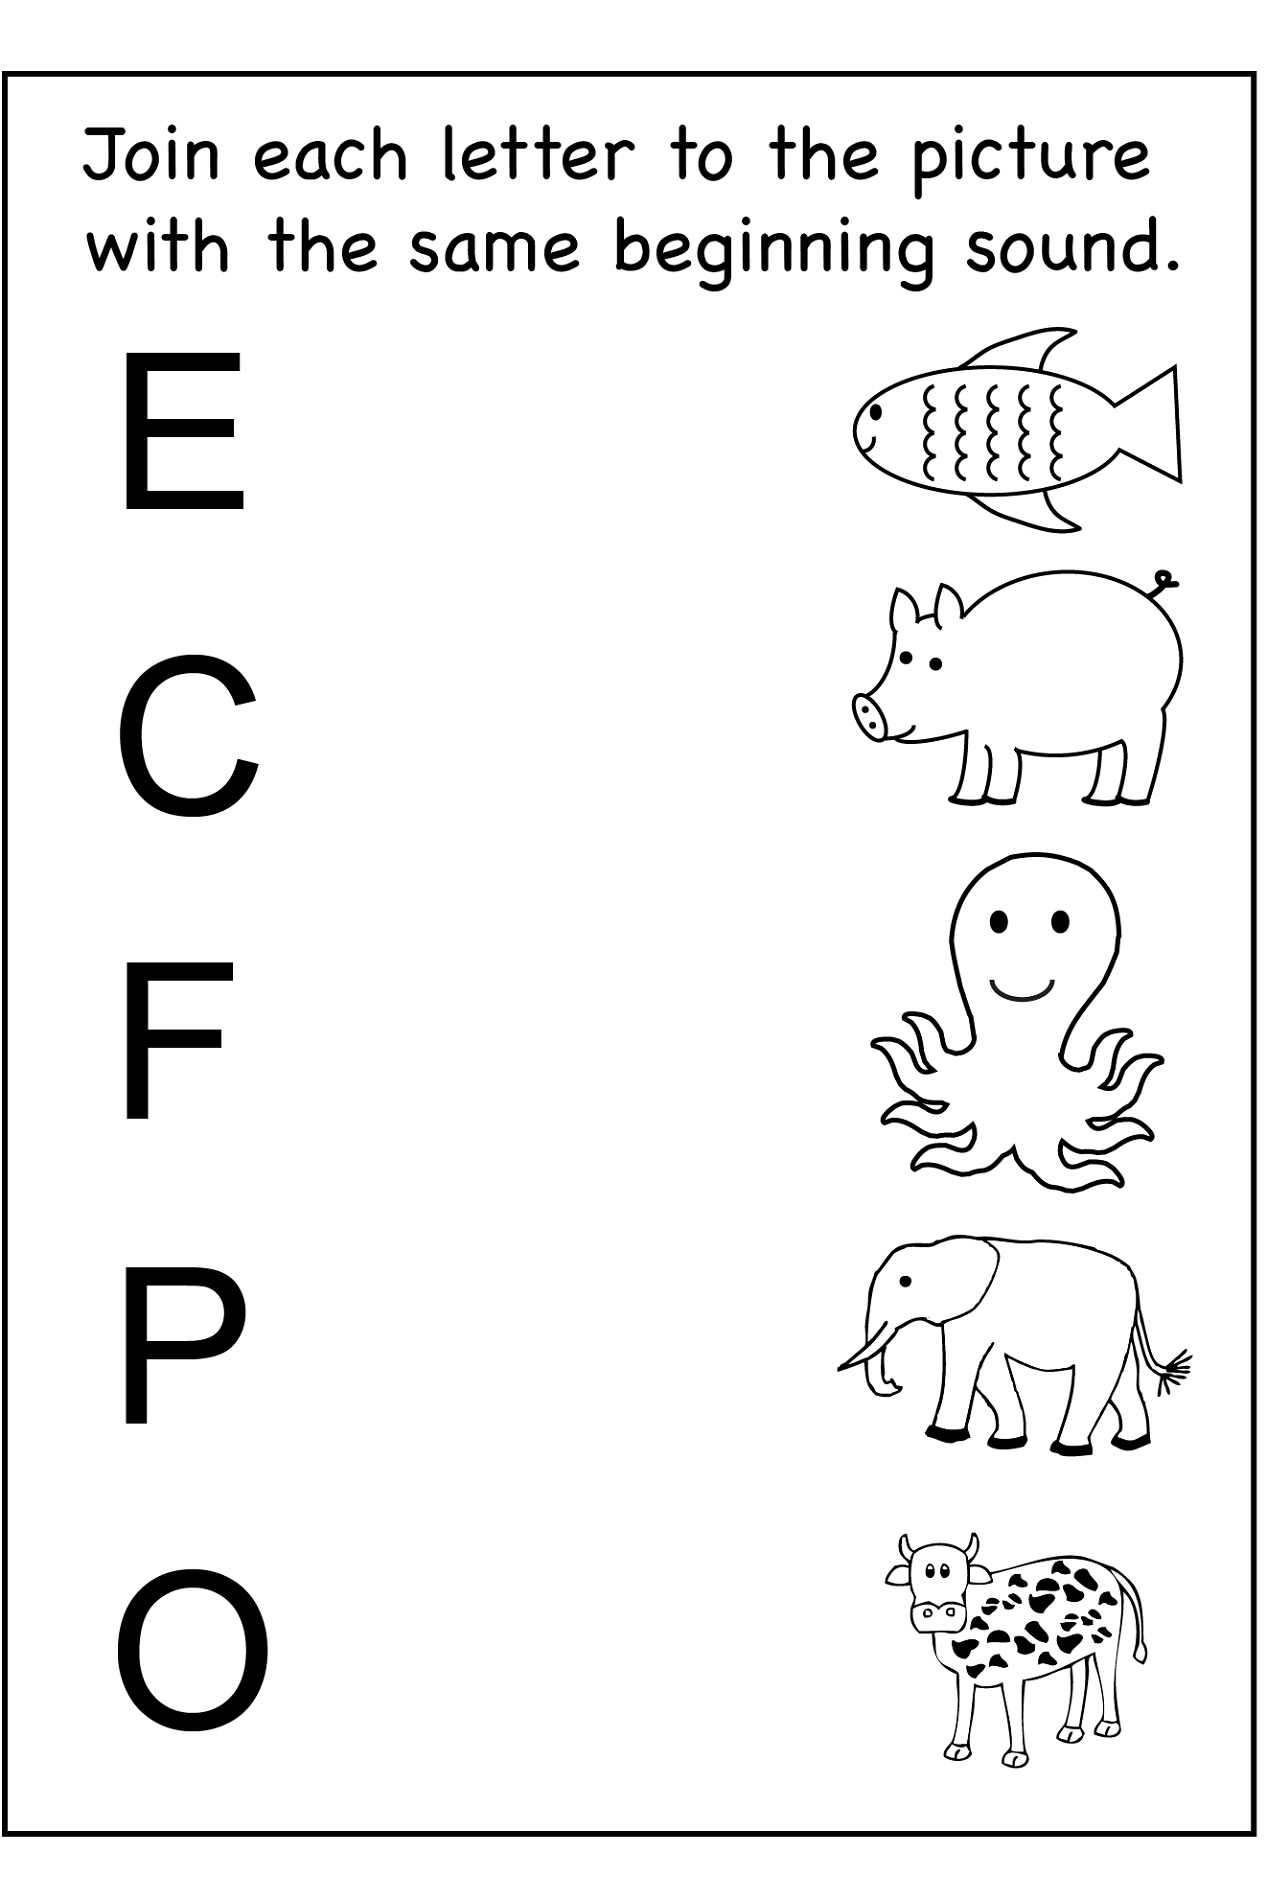 printable activity sheets new - Printable Activity